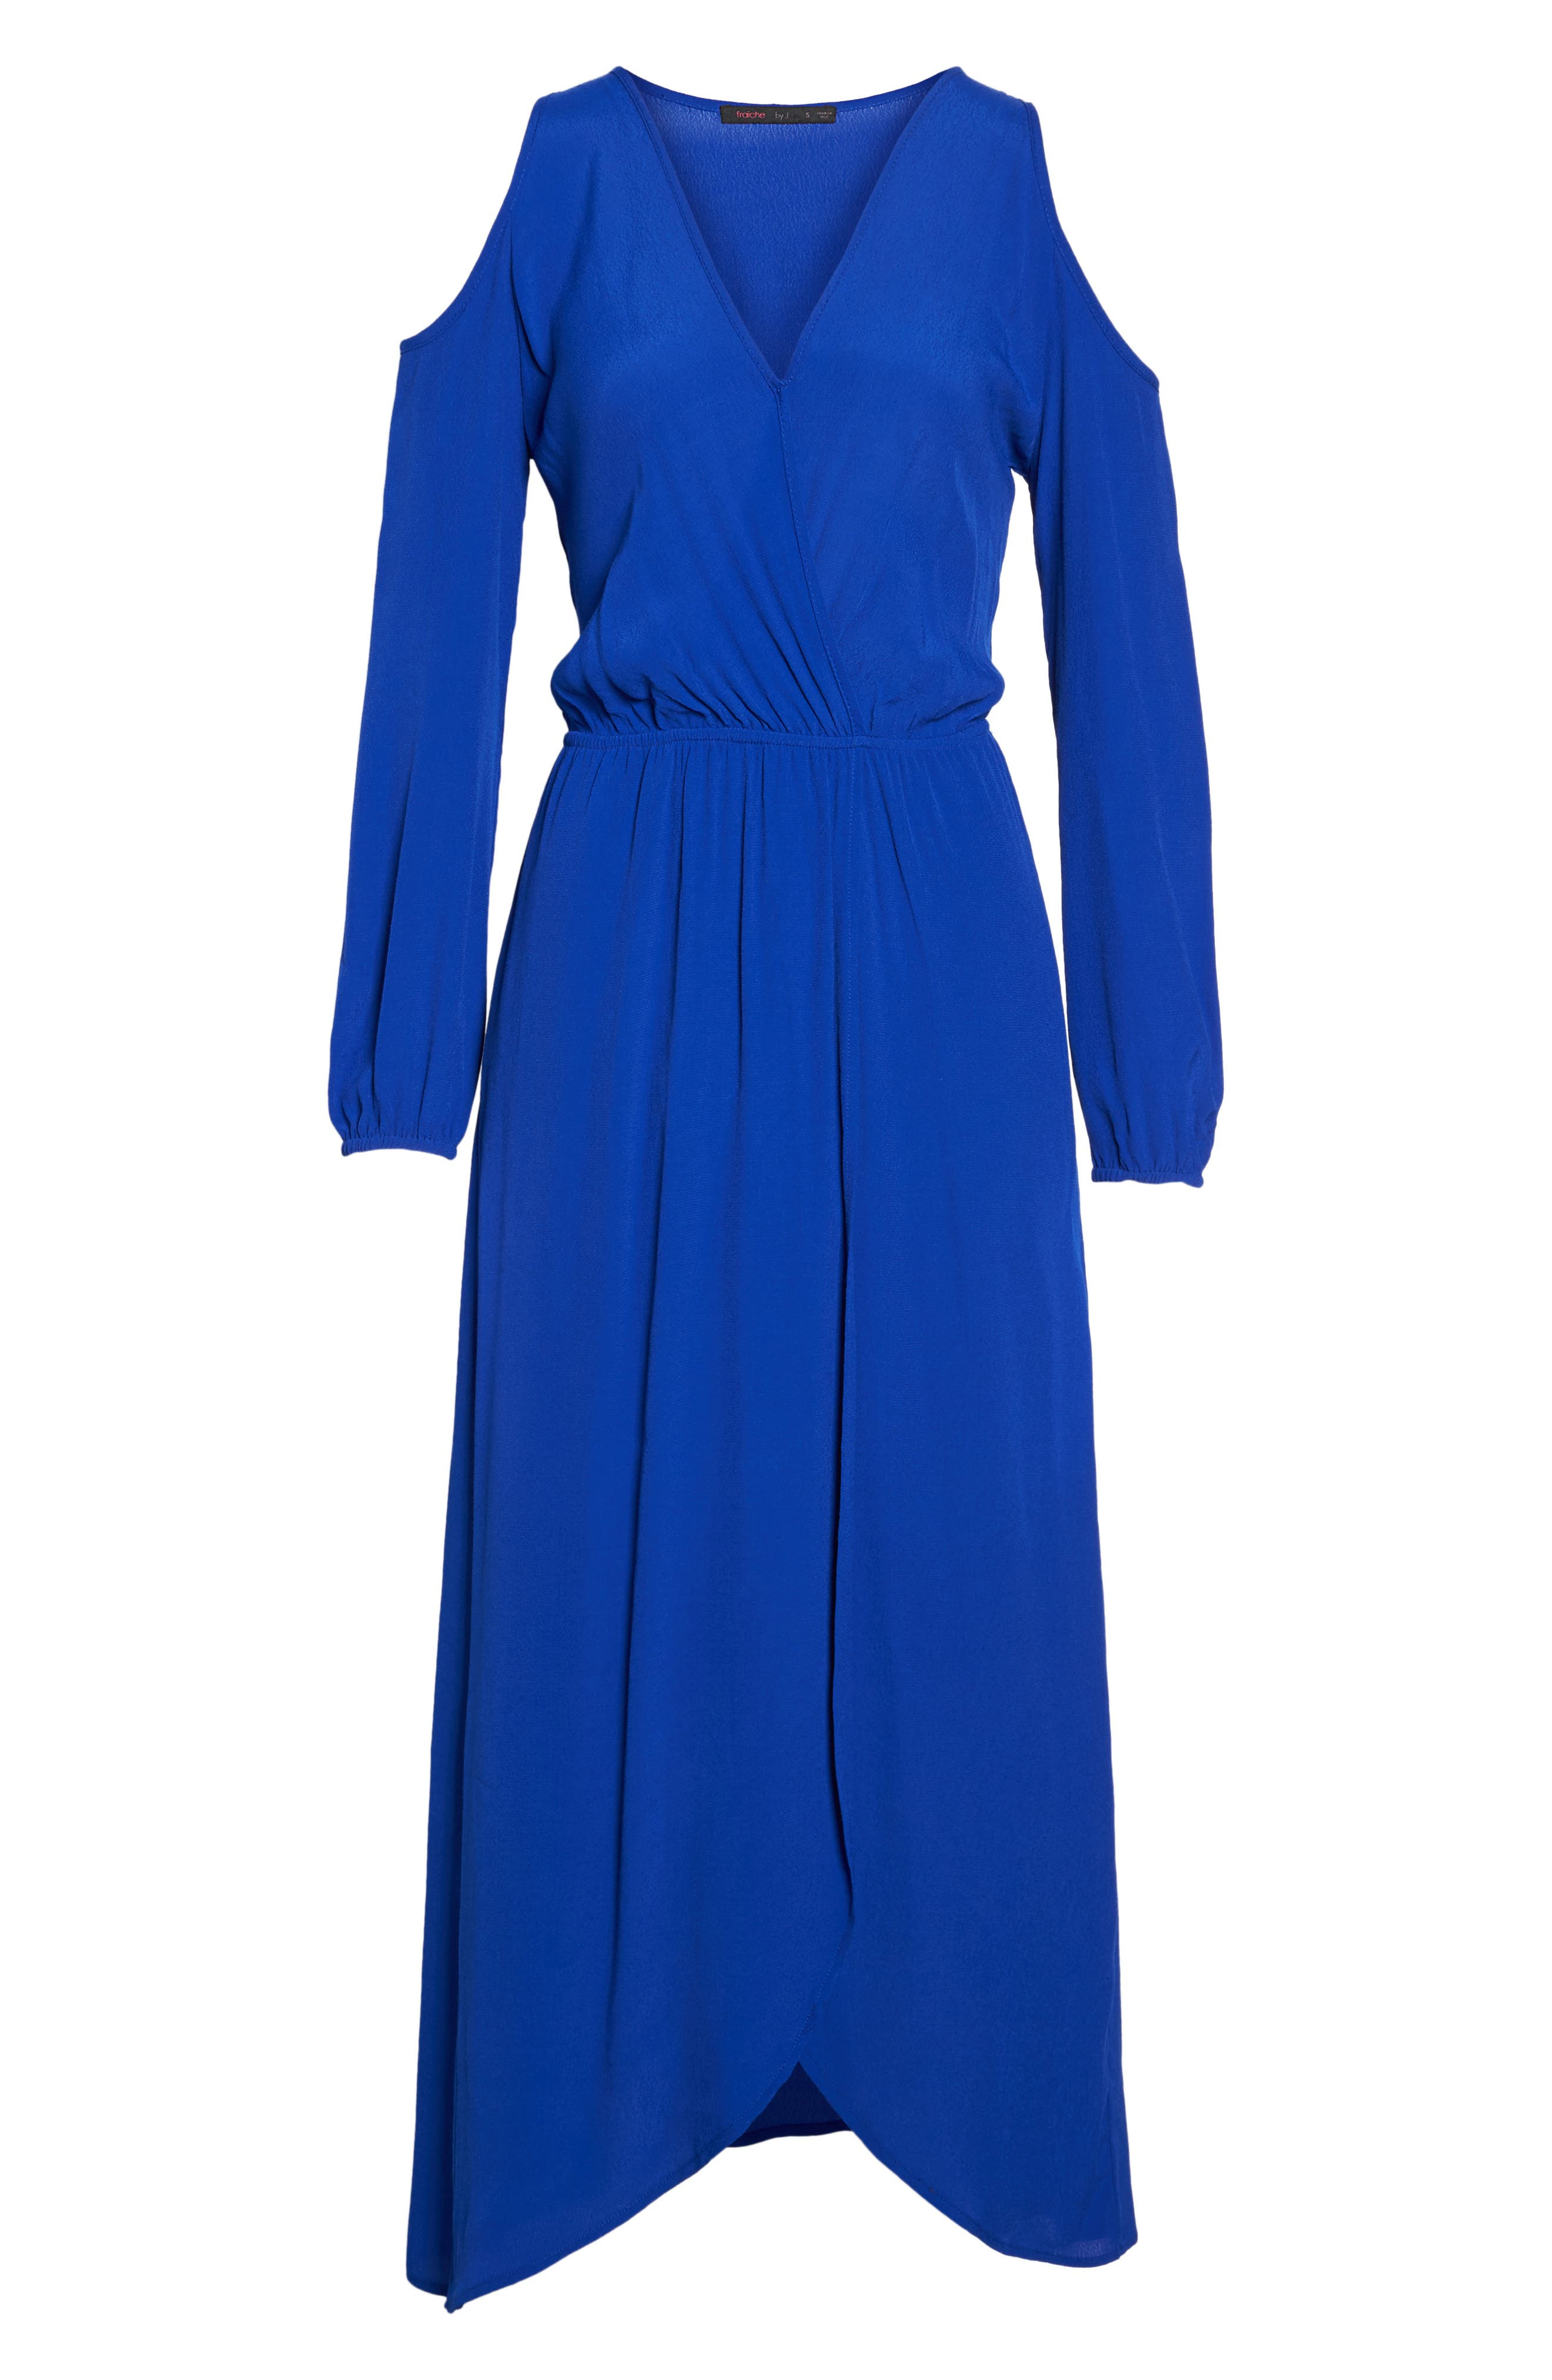 Cold Shoulder Maxi Dress,                             Alternate thumbnail 6, color,                             ROYAL